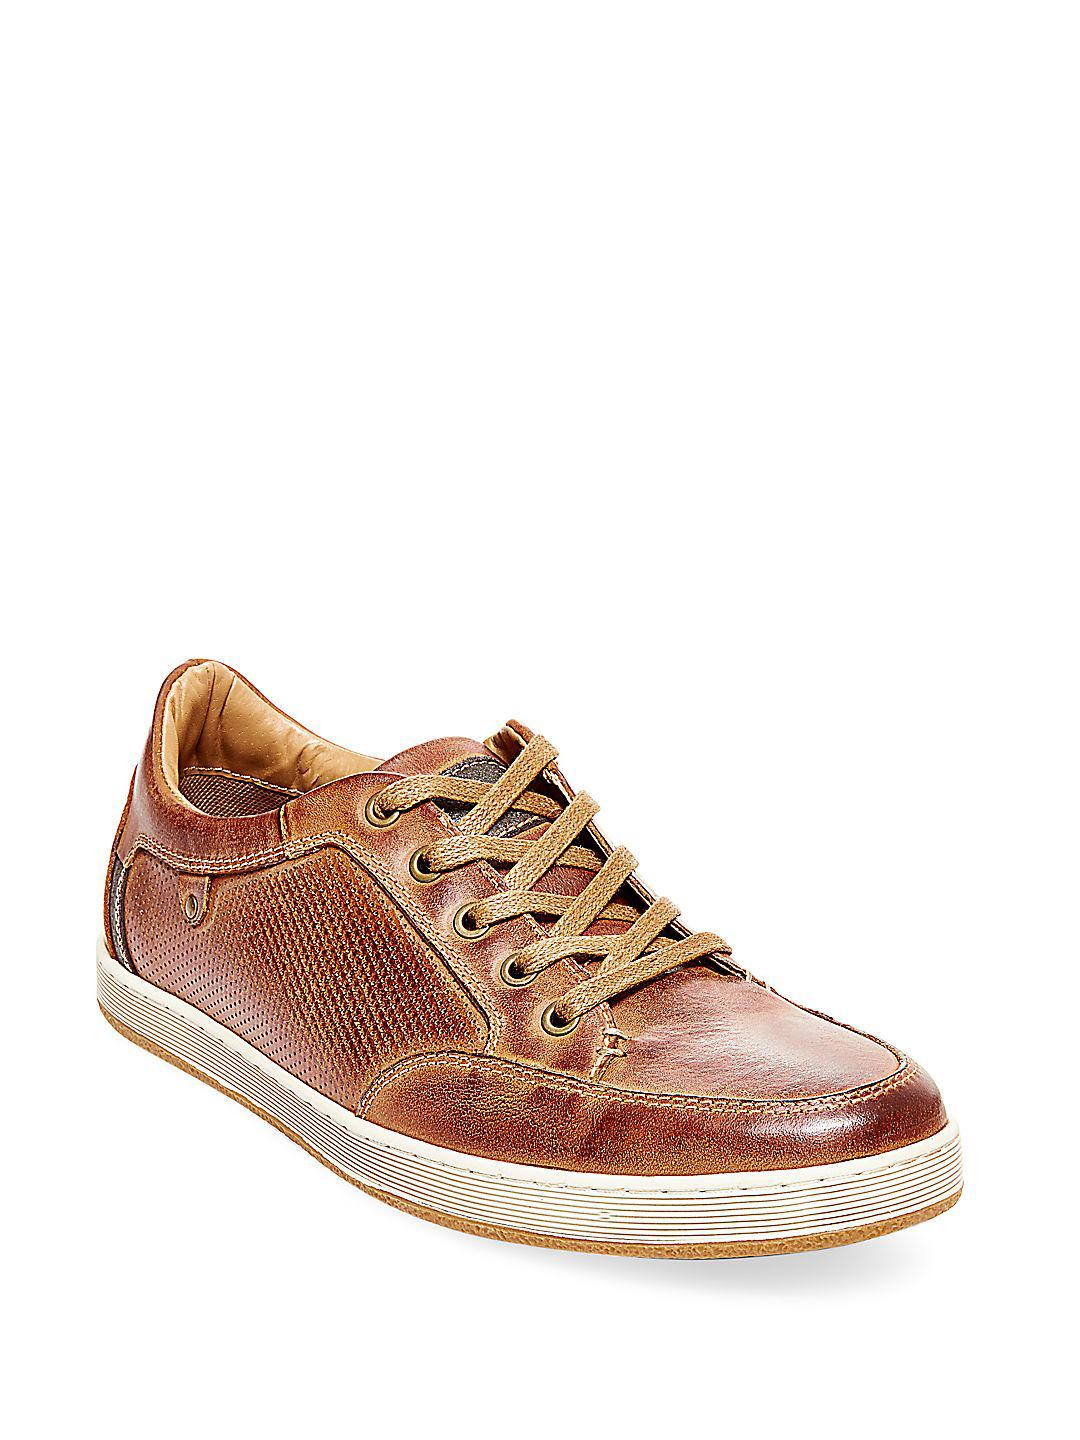 f00ac9d1840 Steve Madden Brown Partikal Perforated Leather Sneakers for men